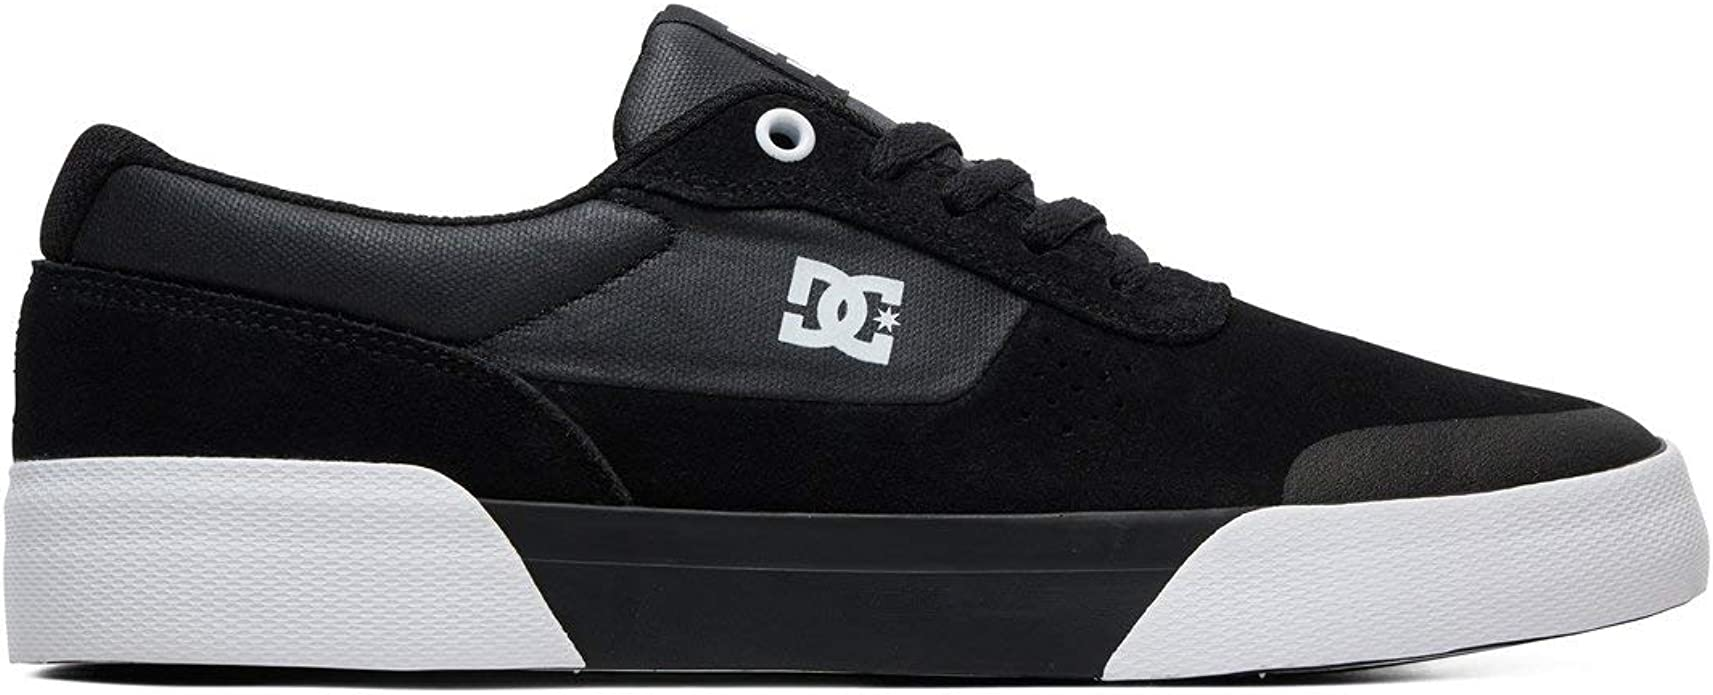 DC Shoes Switch Plus S Sneakers Herren Schwarz